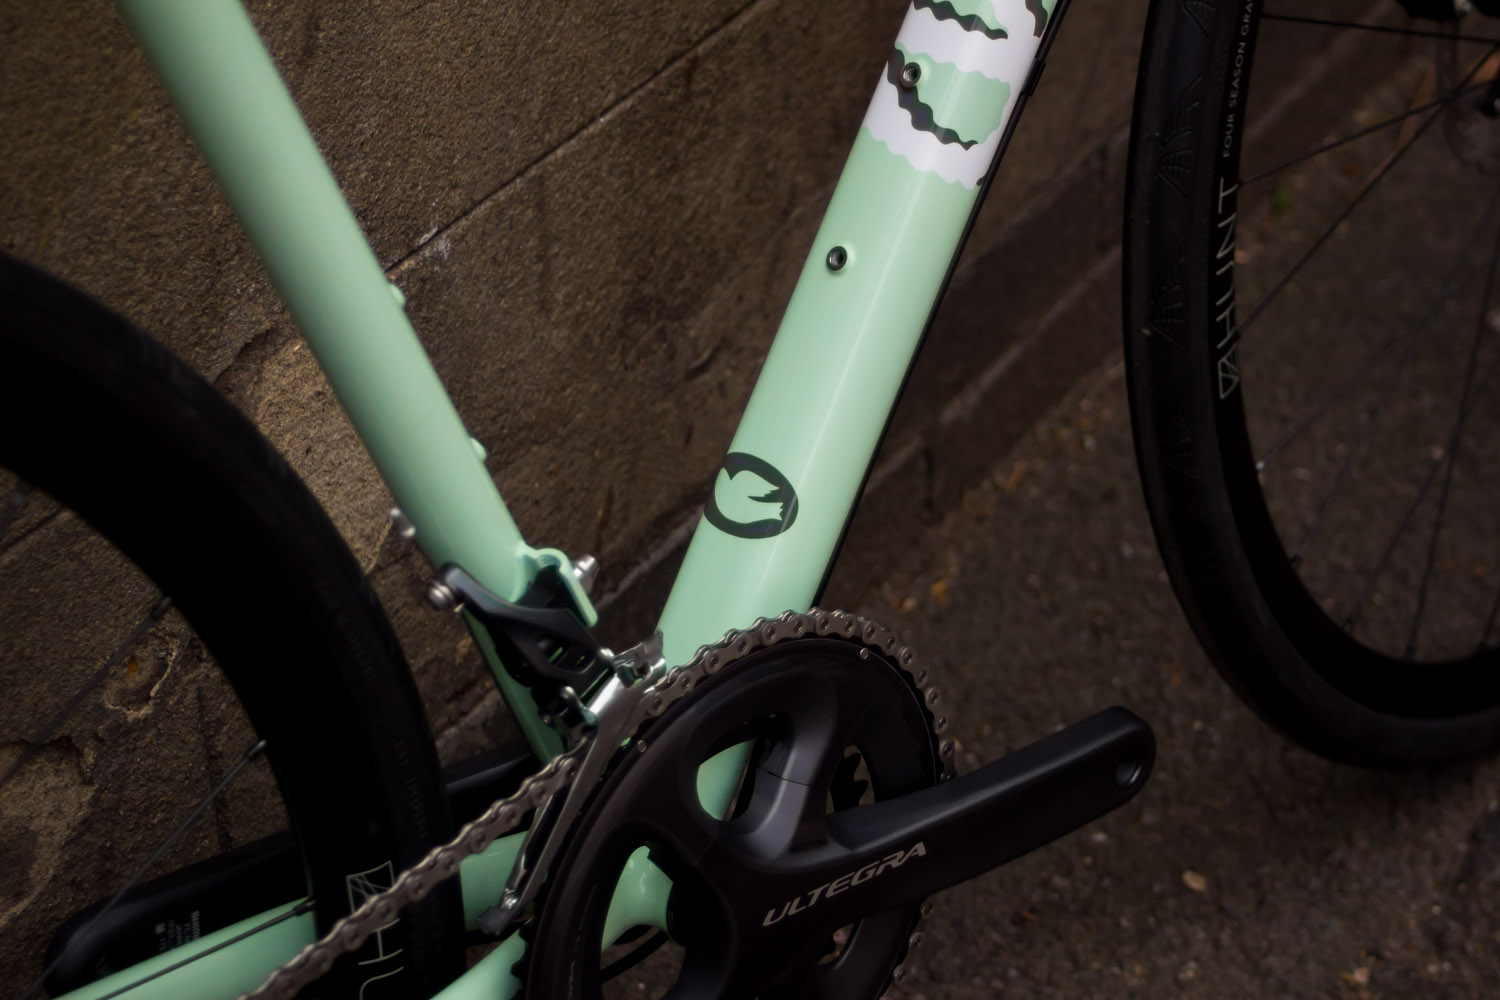 quirk_cycles_brendans_all_road_web_0005.jpg